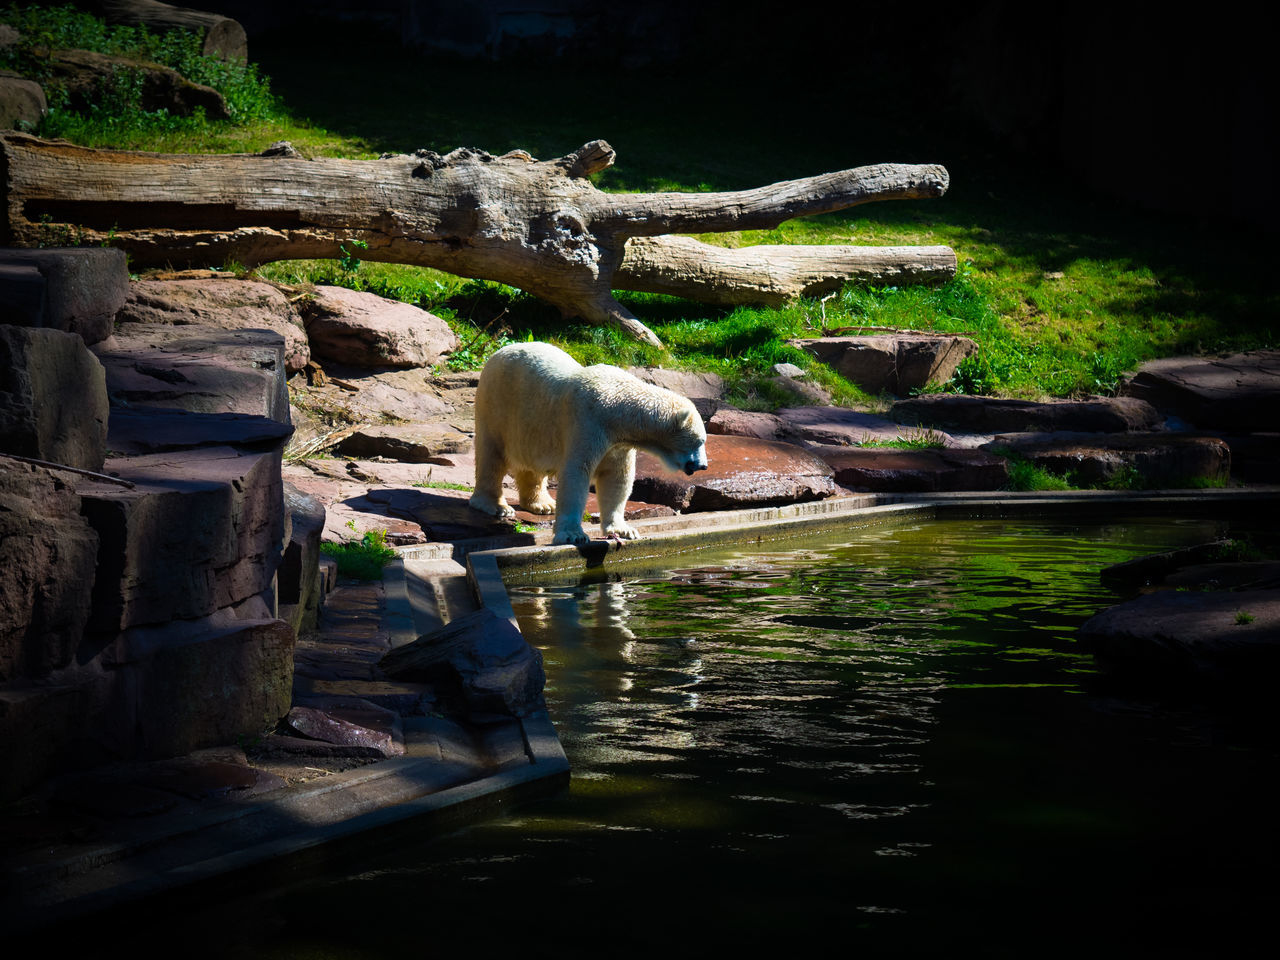 Animal Animal Themes Animals In The Wild Day Ice Bear Nature No People Non-urban Scene Outdoors Rock - Object Scenics Swimming Tranquility Water Waterfront Zoology